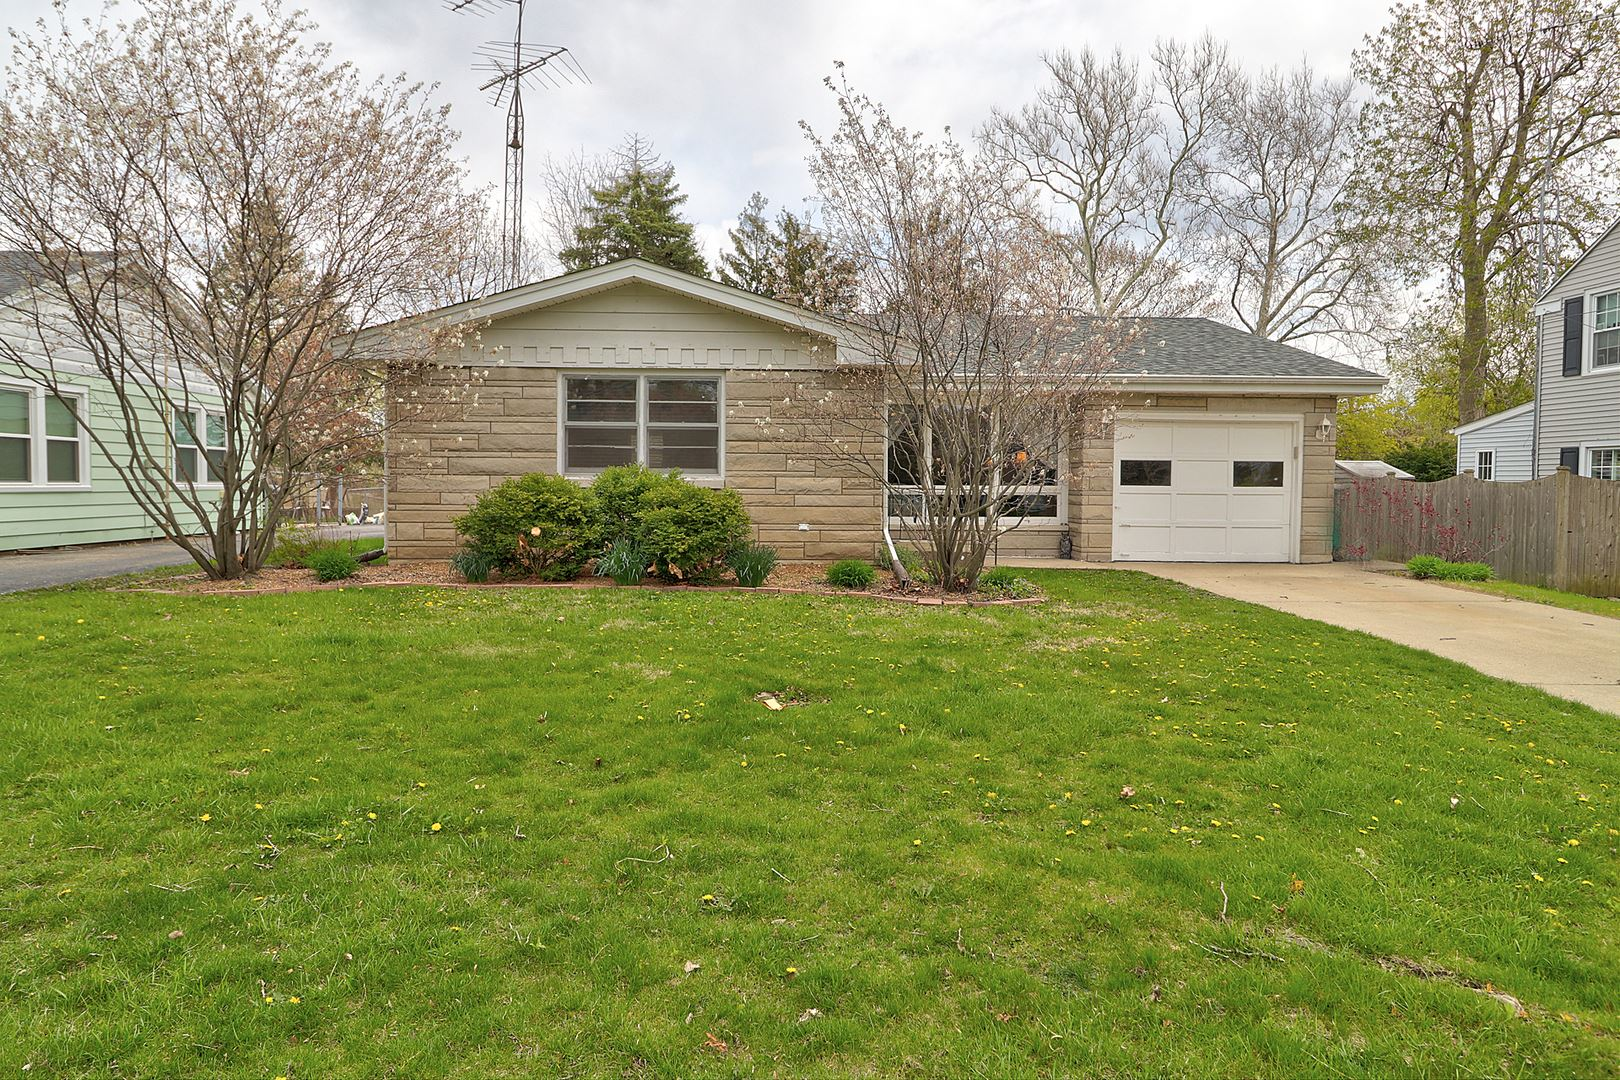 Photo of 916 DAWES Avenue, Joliet, IL 60435 (MLS # 11062121)